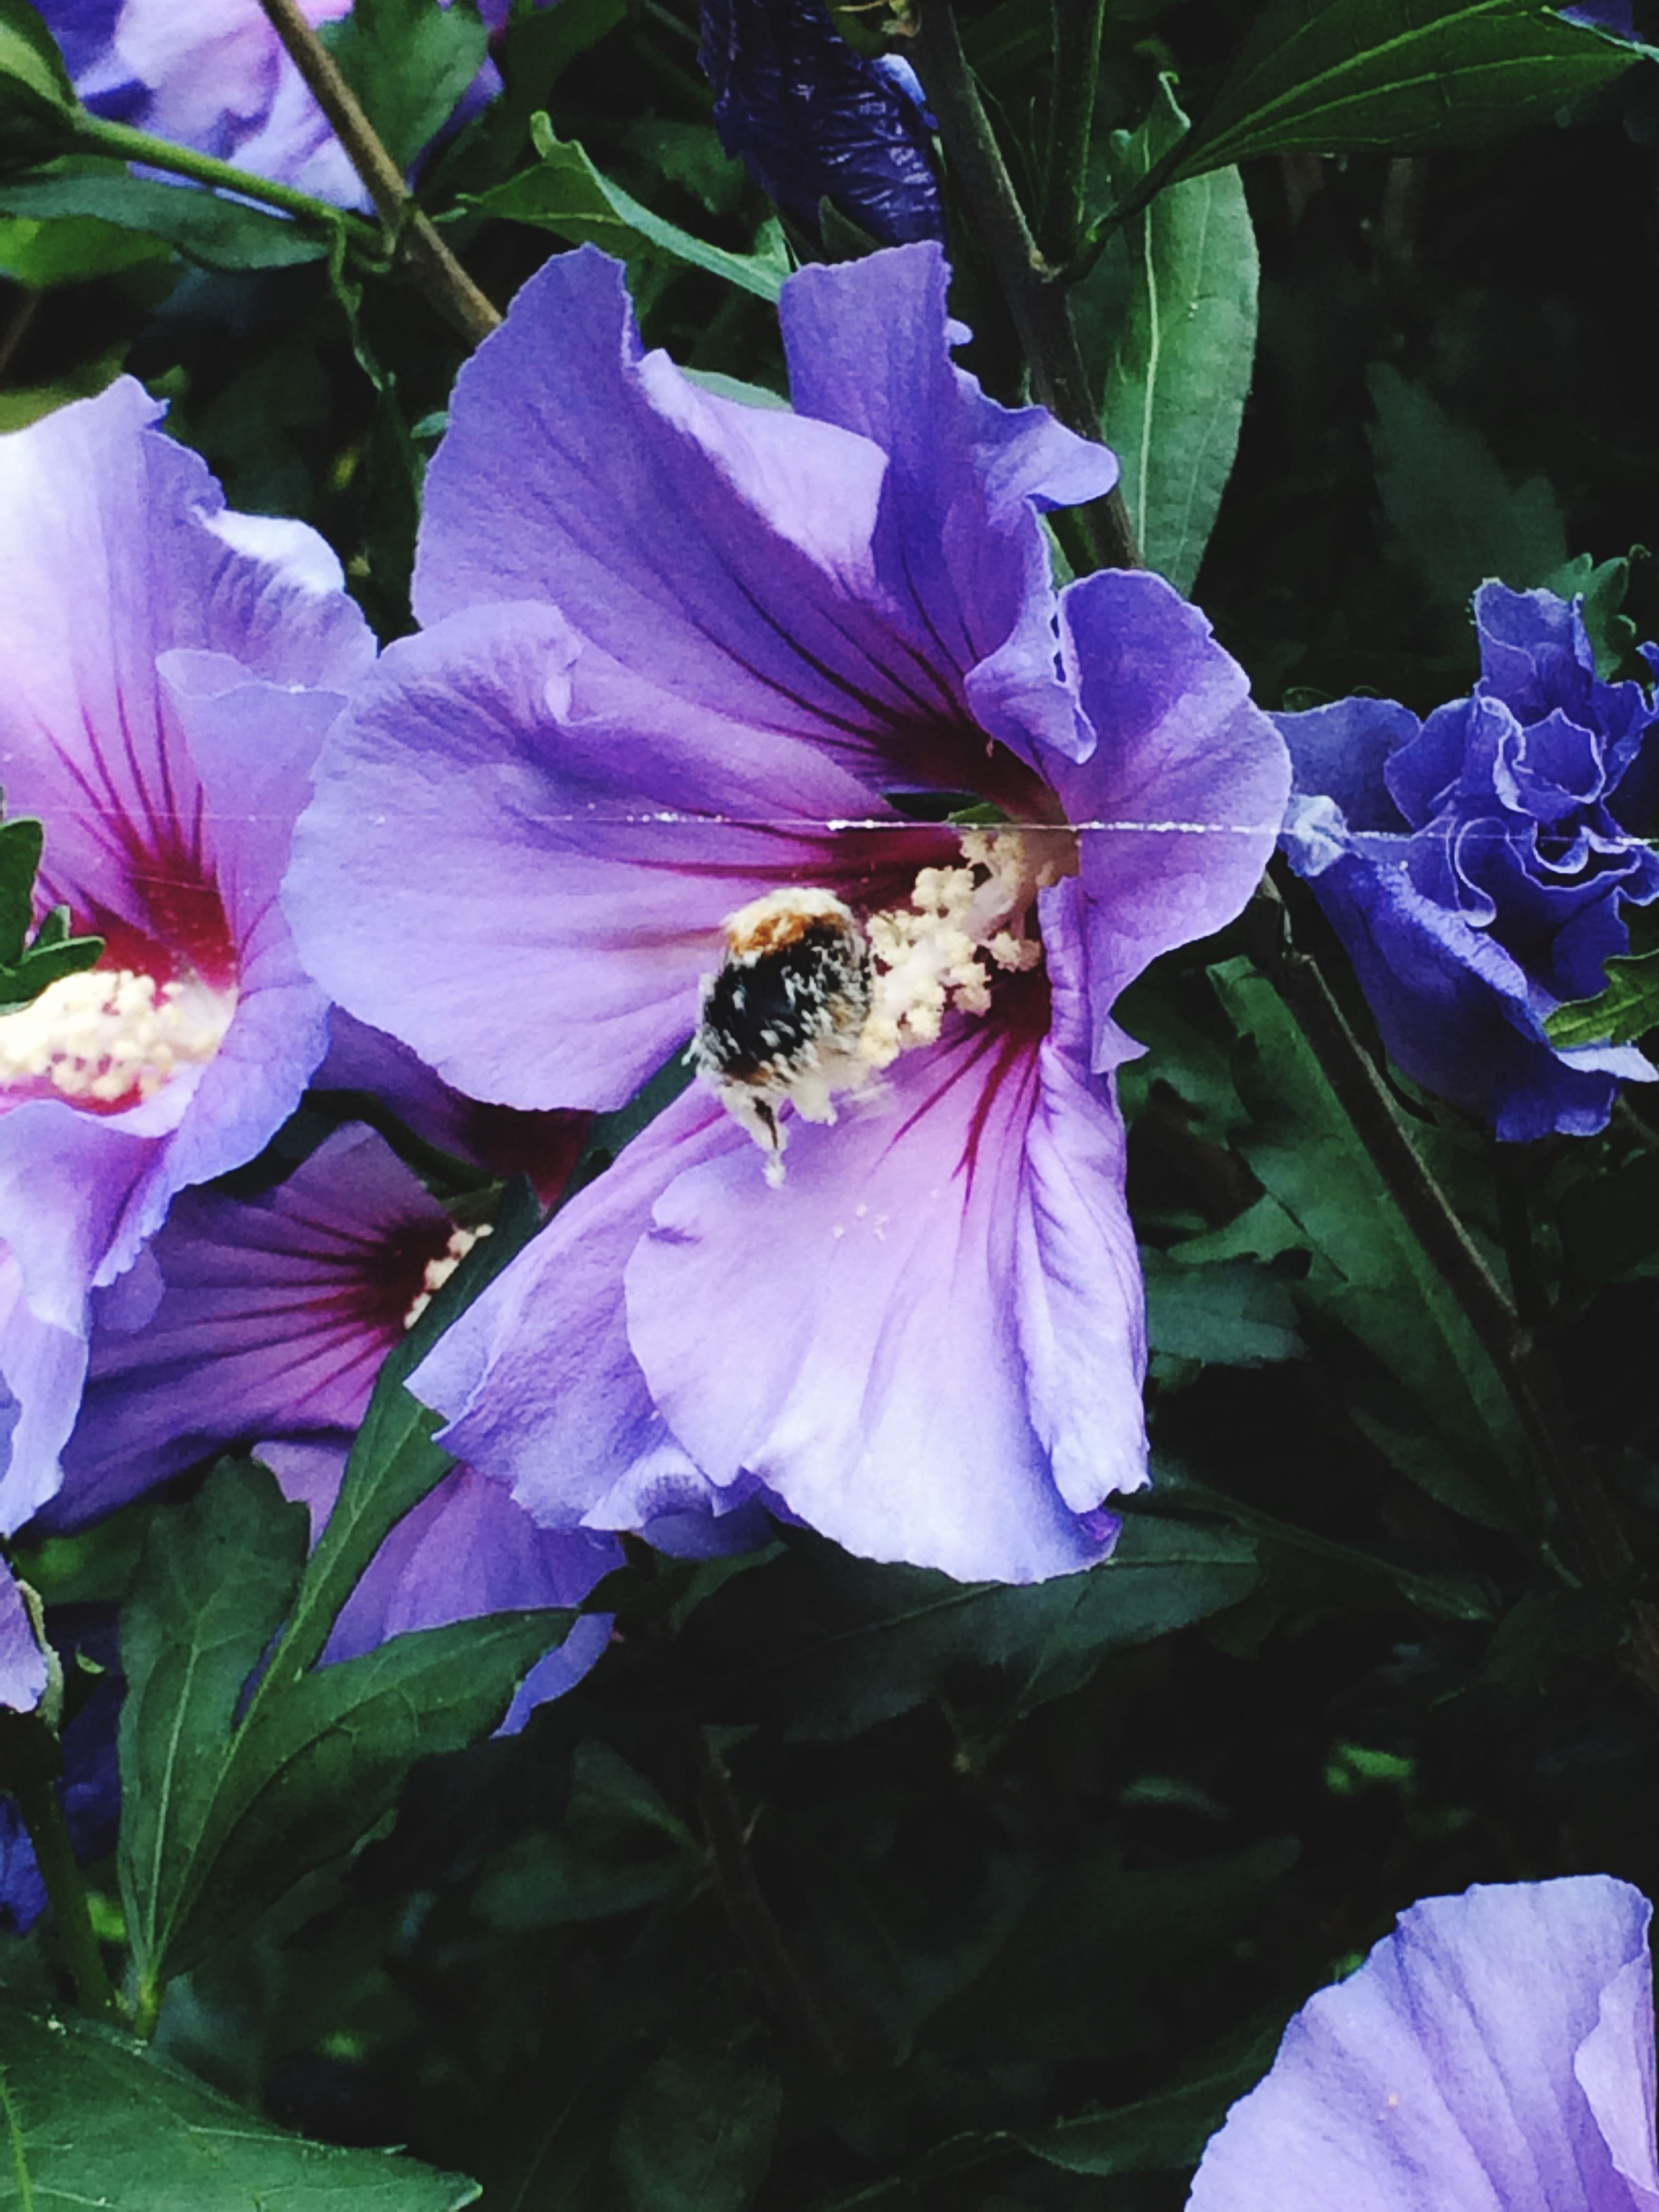 flower, petal, freshness, fragility, insect, purple, one animal, flower head, animal themes, growth, beauty in nature, animals in the wild, wildlife, close-up, plant, nature, blooming, focus on foreground, bee, pollination